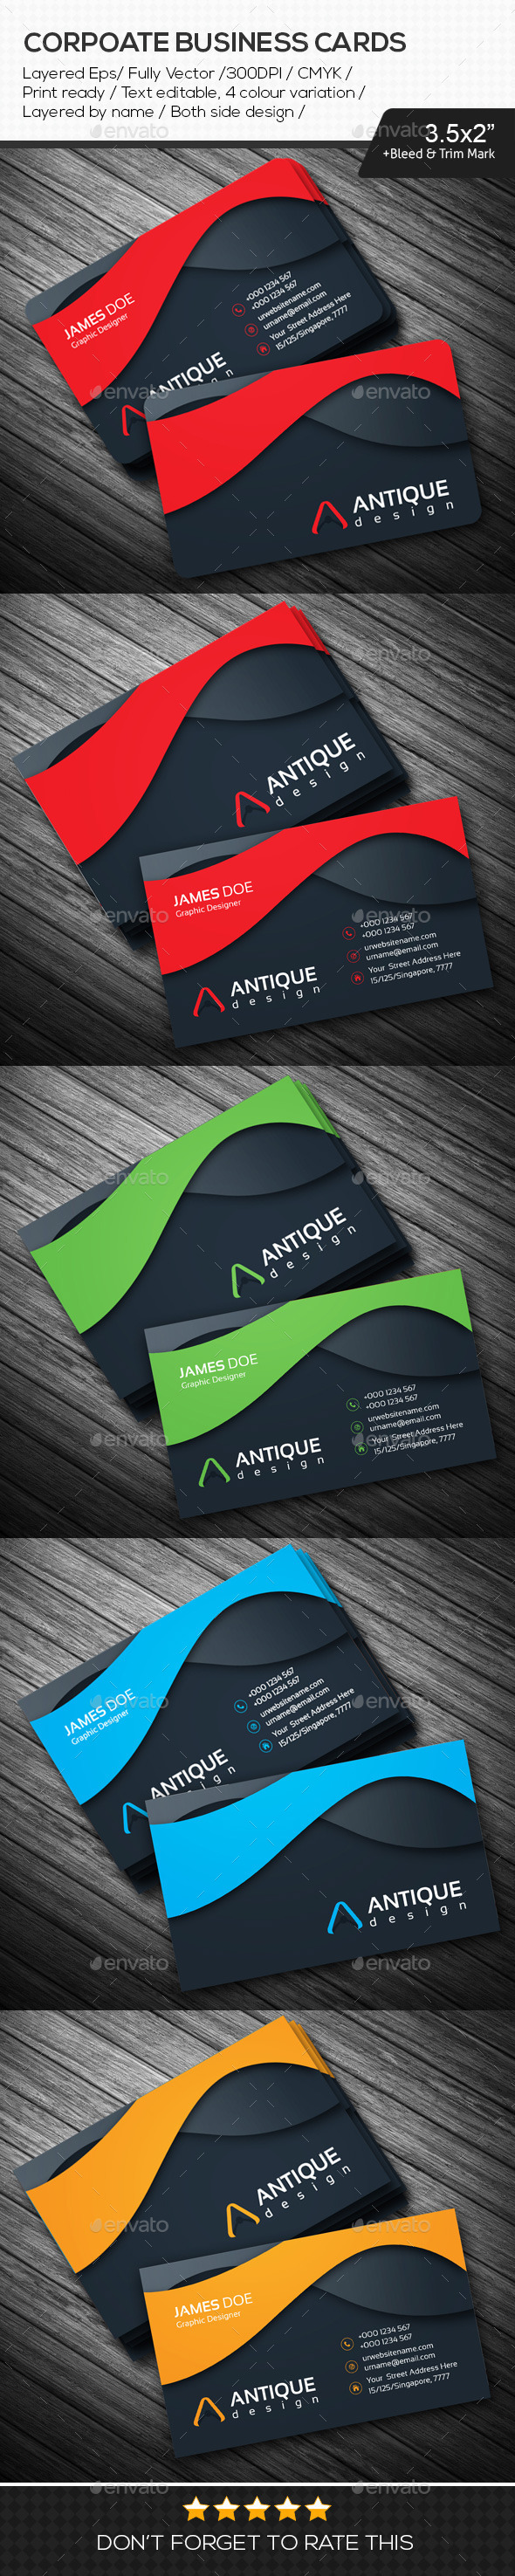 GraphicRiver Antique Design Corporate Business Cards 10849526